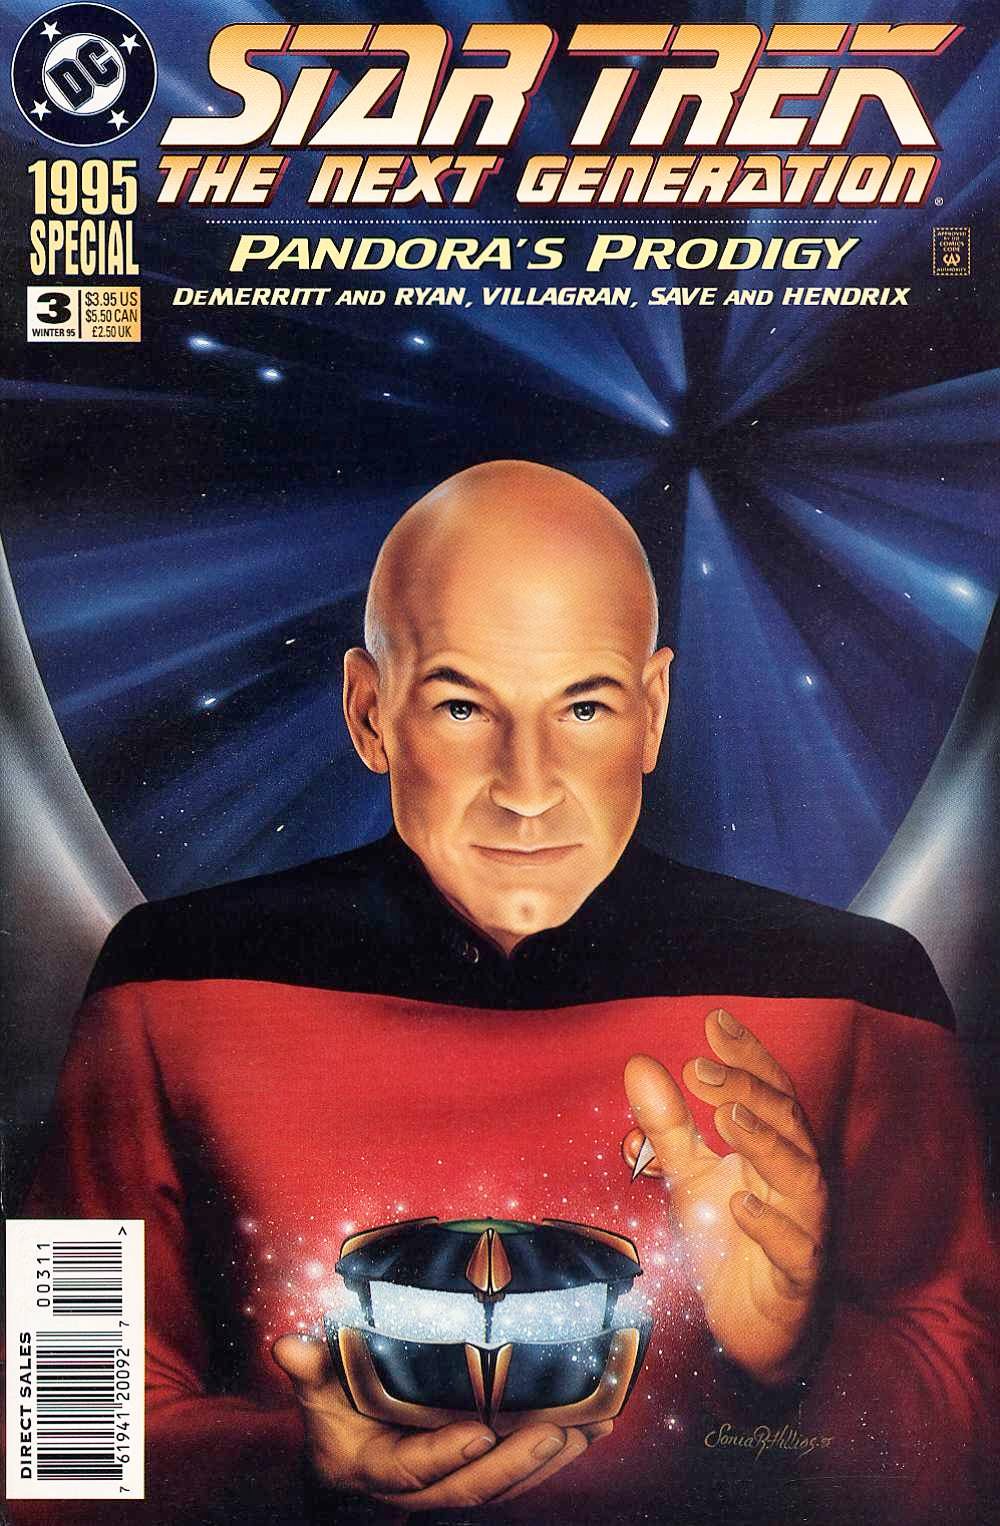 Star Trek: The Next Generation Special, Issue 3